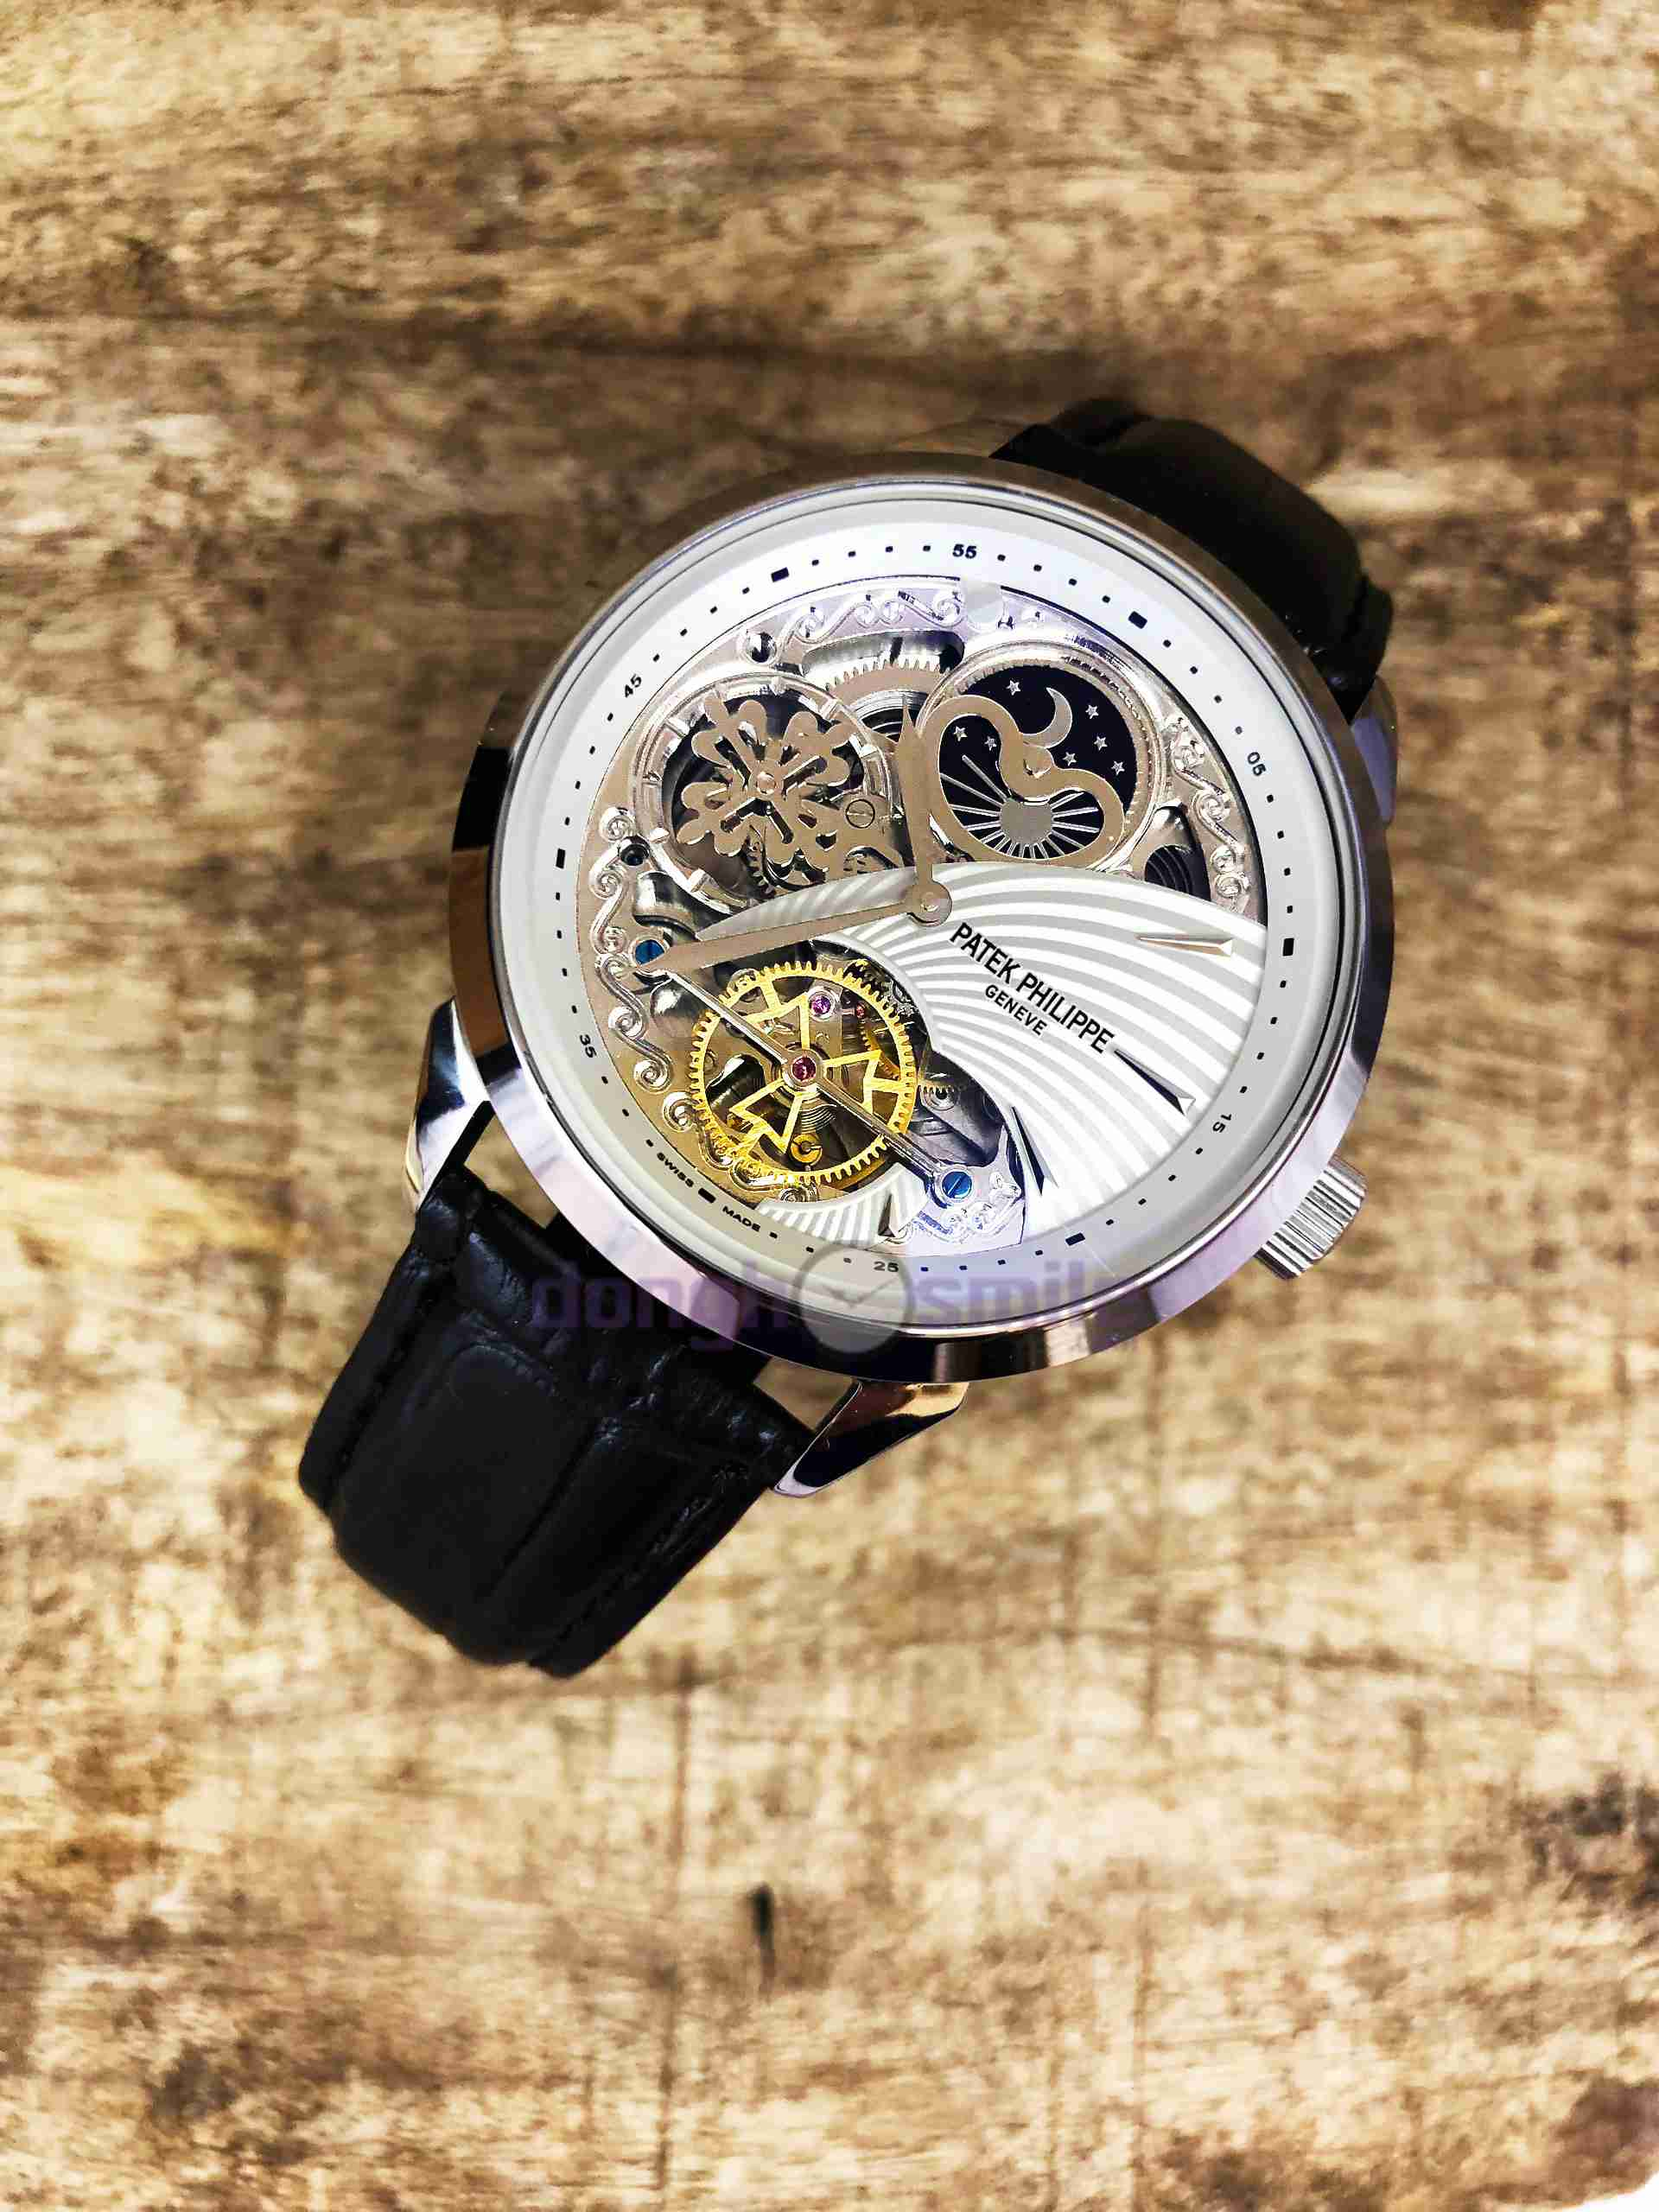 dong-ho-patek-philippe-geneve-gia-tot-a-pp114-2